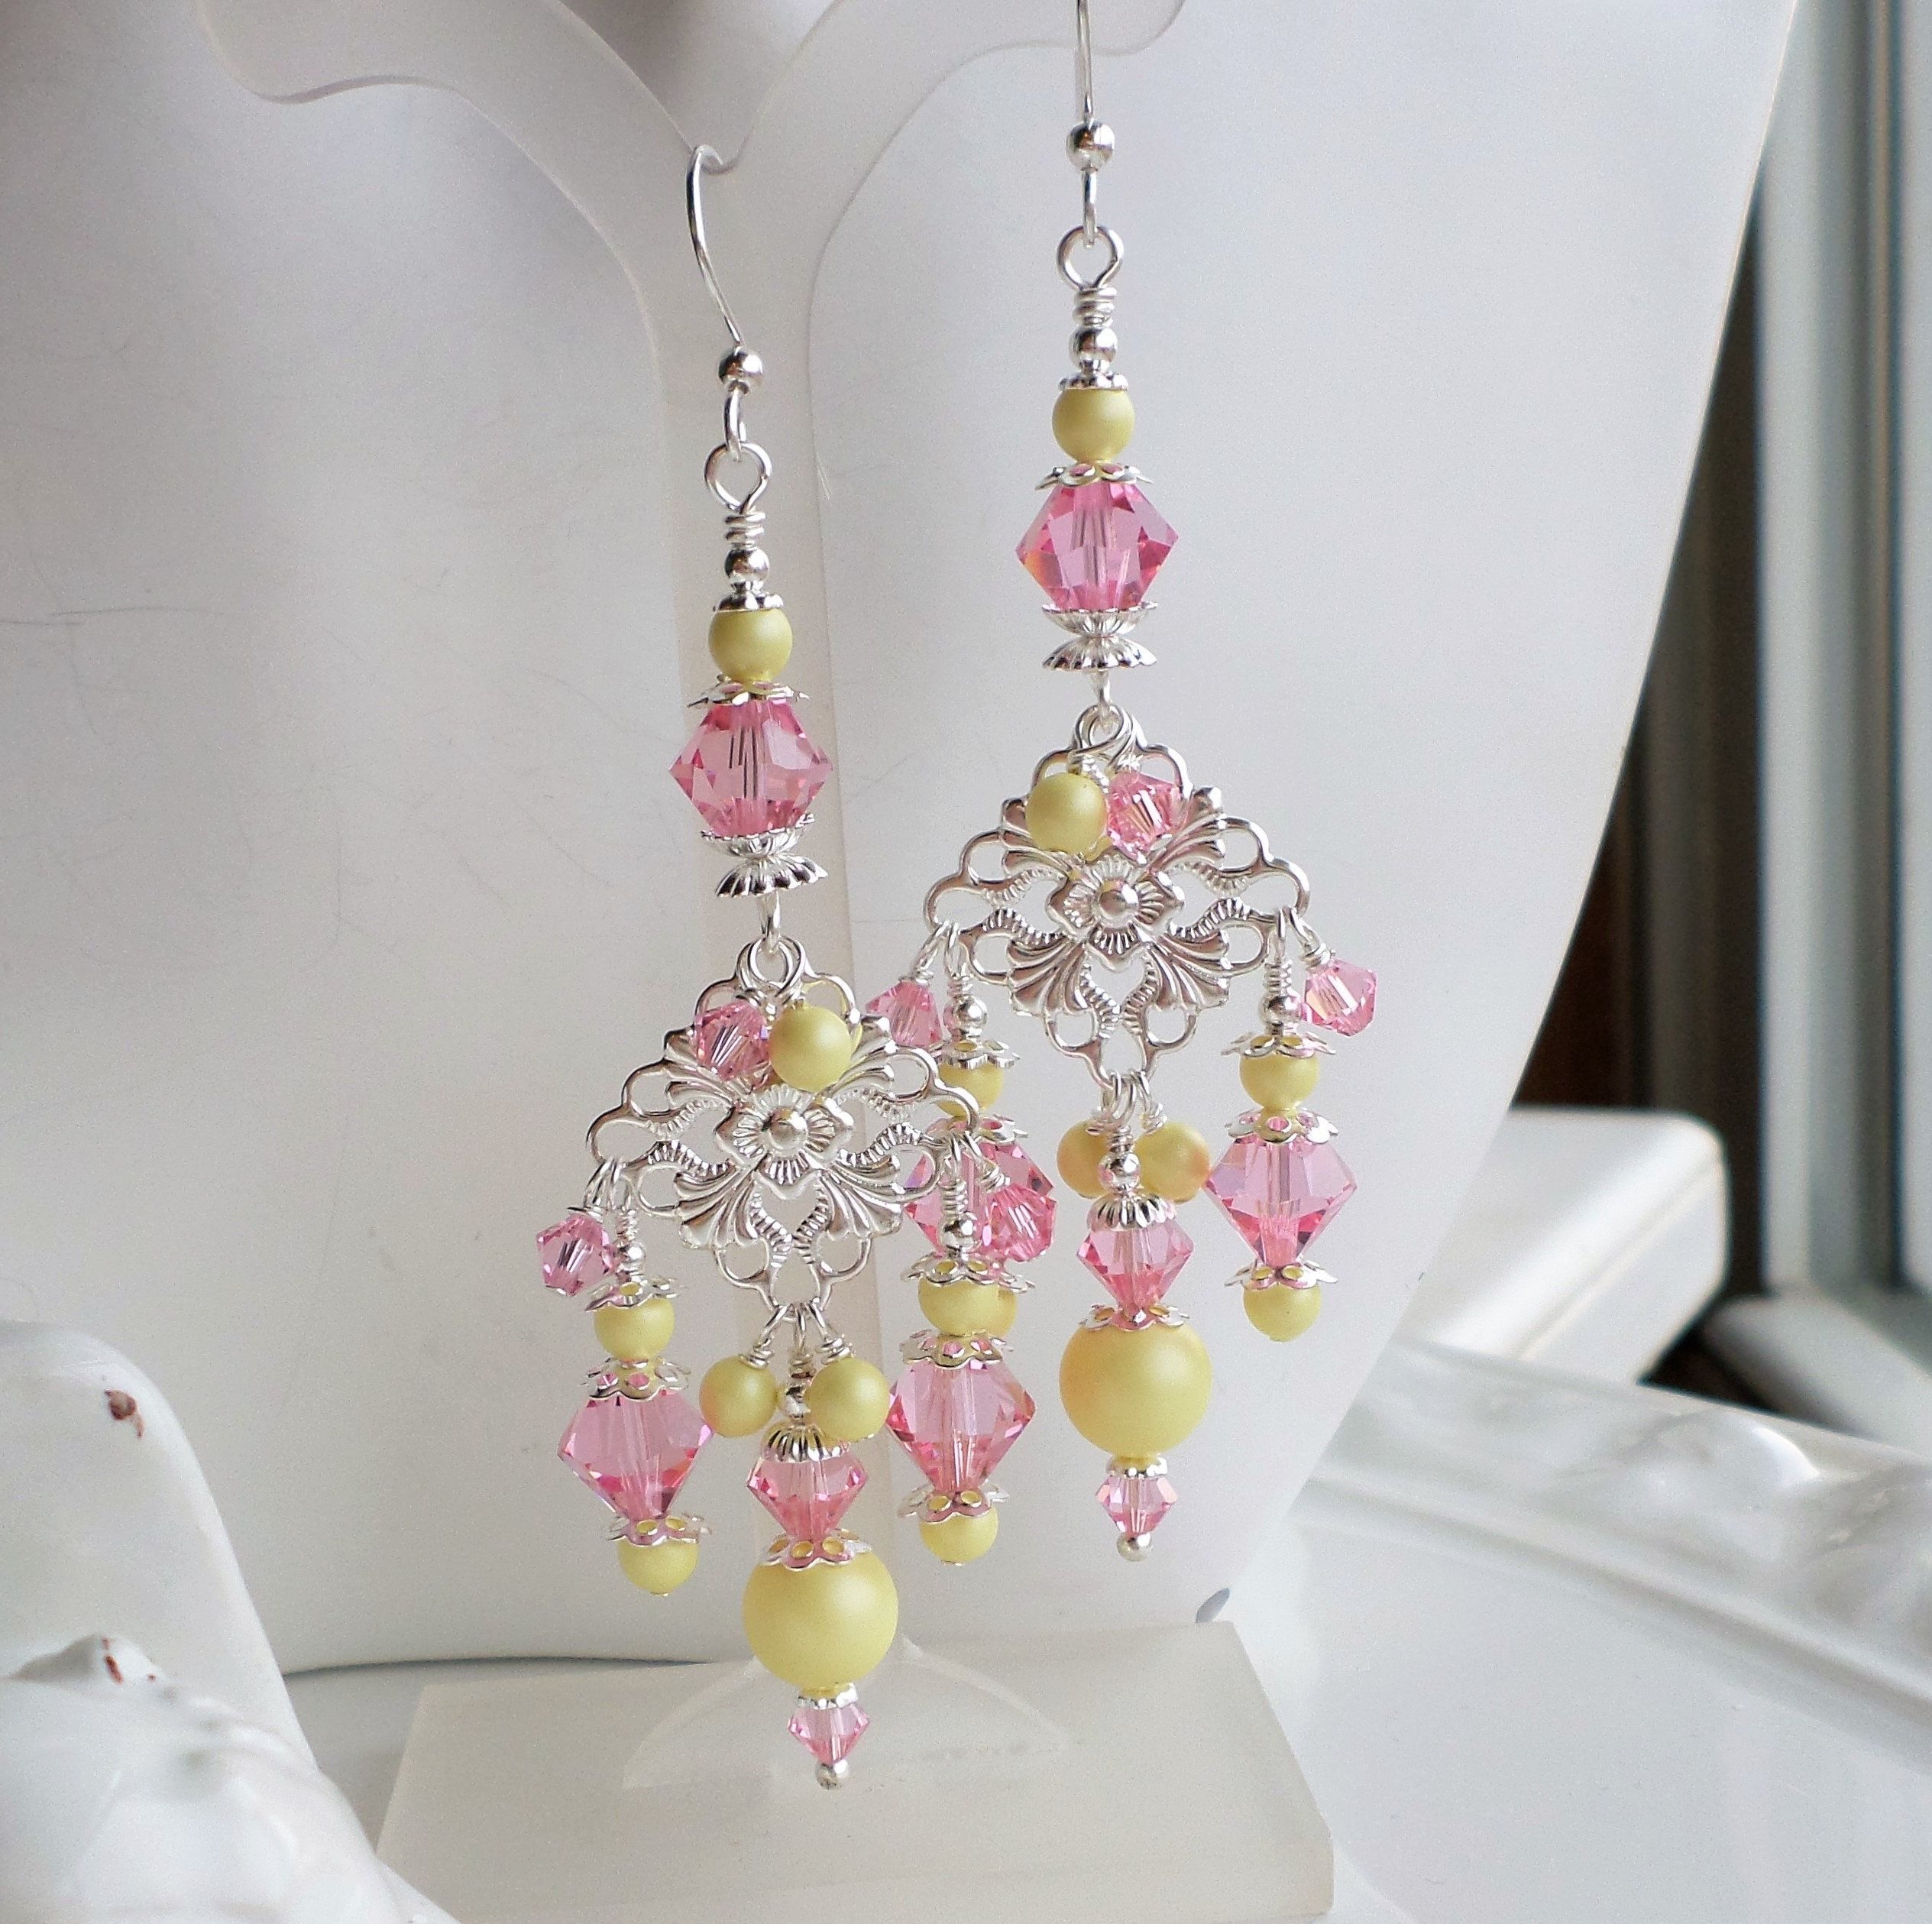 Pink yellow long chandelier earrings silver filigree earrings pink yellow long chandelier earrings silver filigree earrings yellow pearl earrings 3 inch earrings pink crystal silver earrings arubaitofo Choice Image